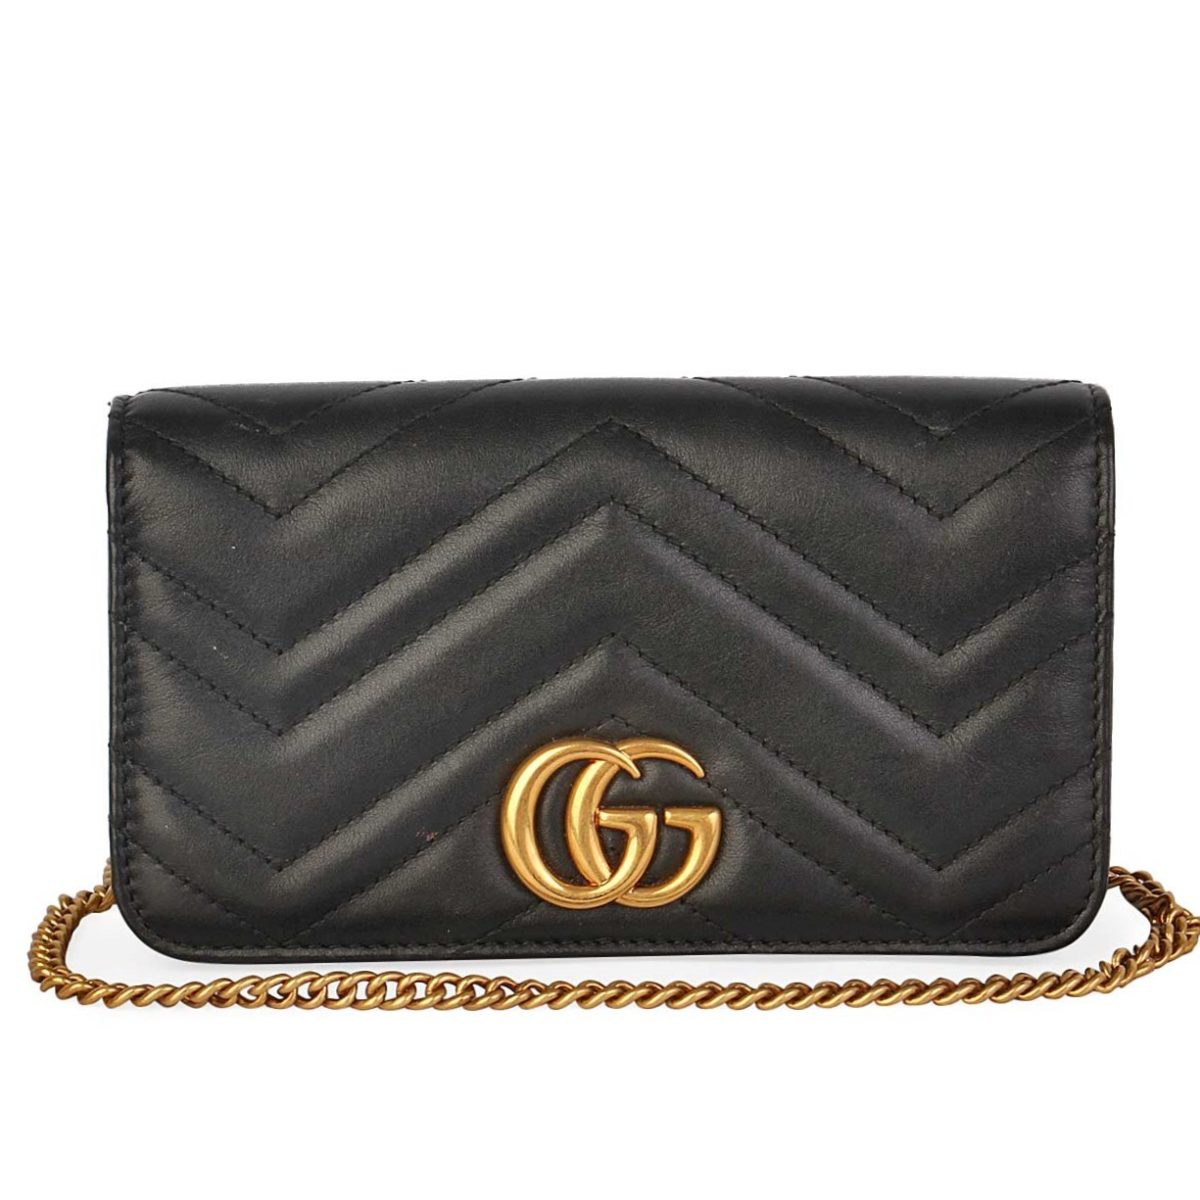 42604a96acd GUCCI GG Marmont Matelassé Mini Crossbody Bag Black